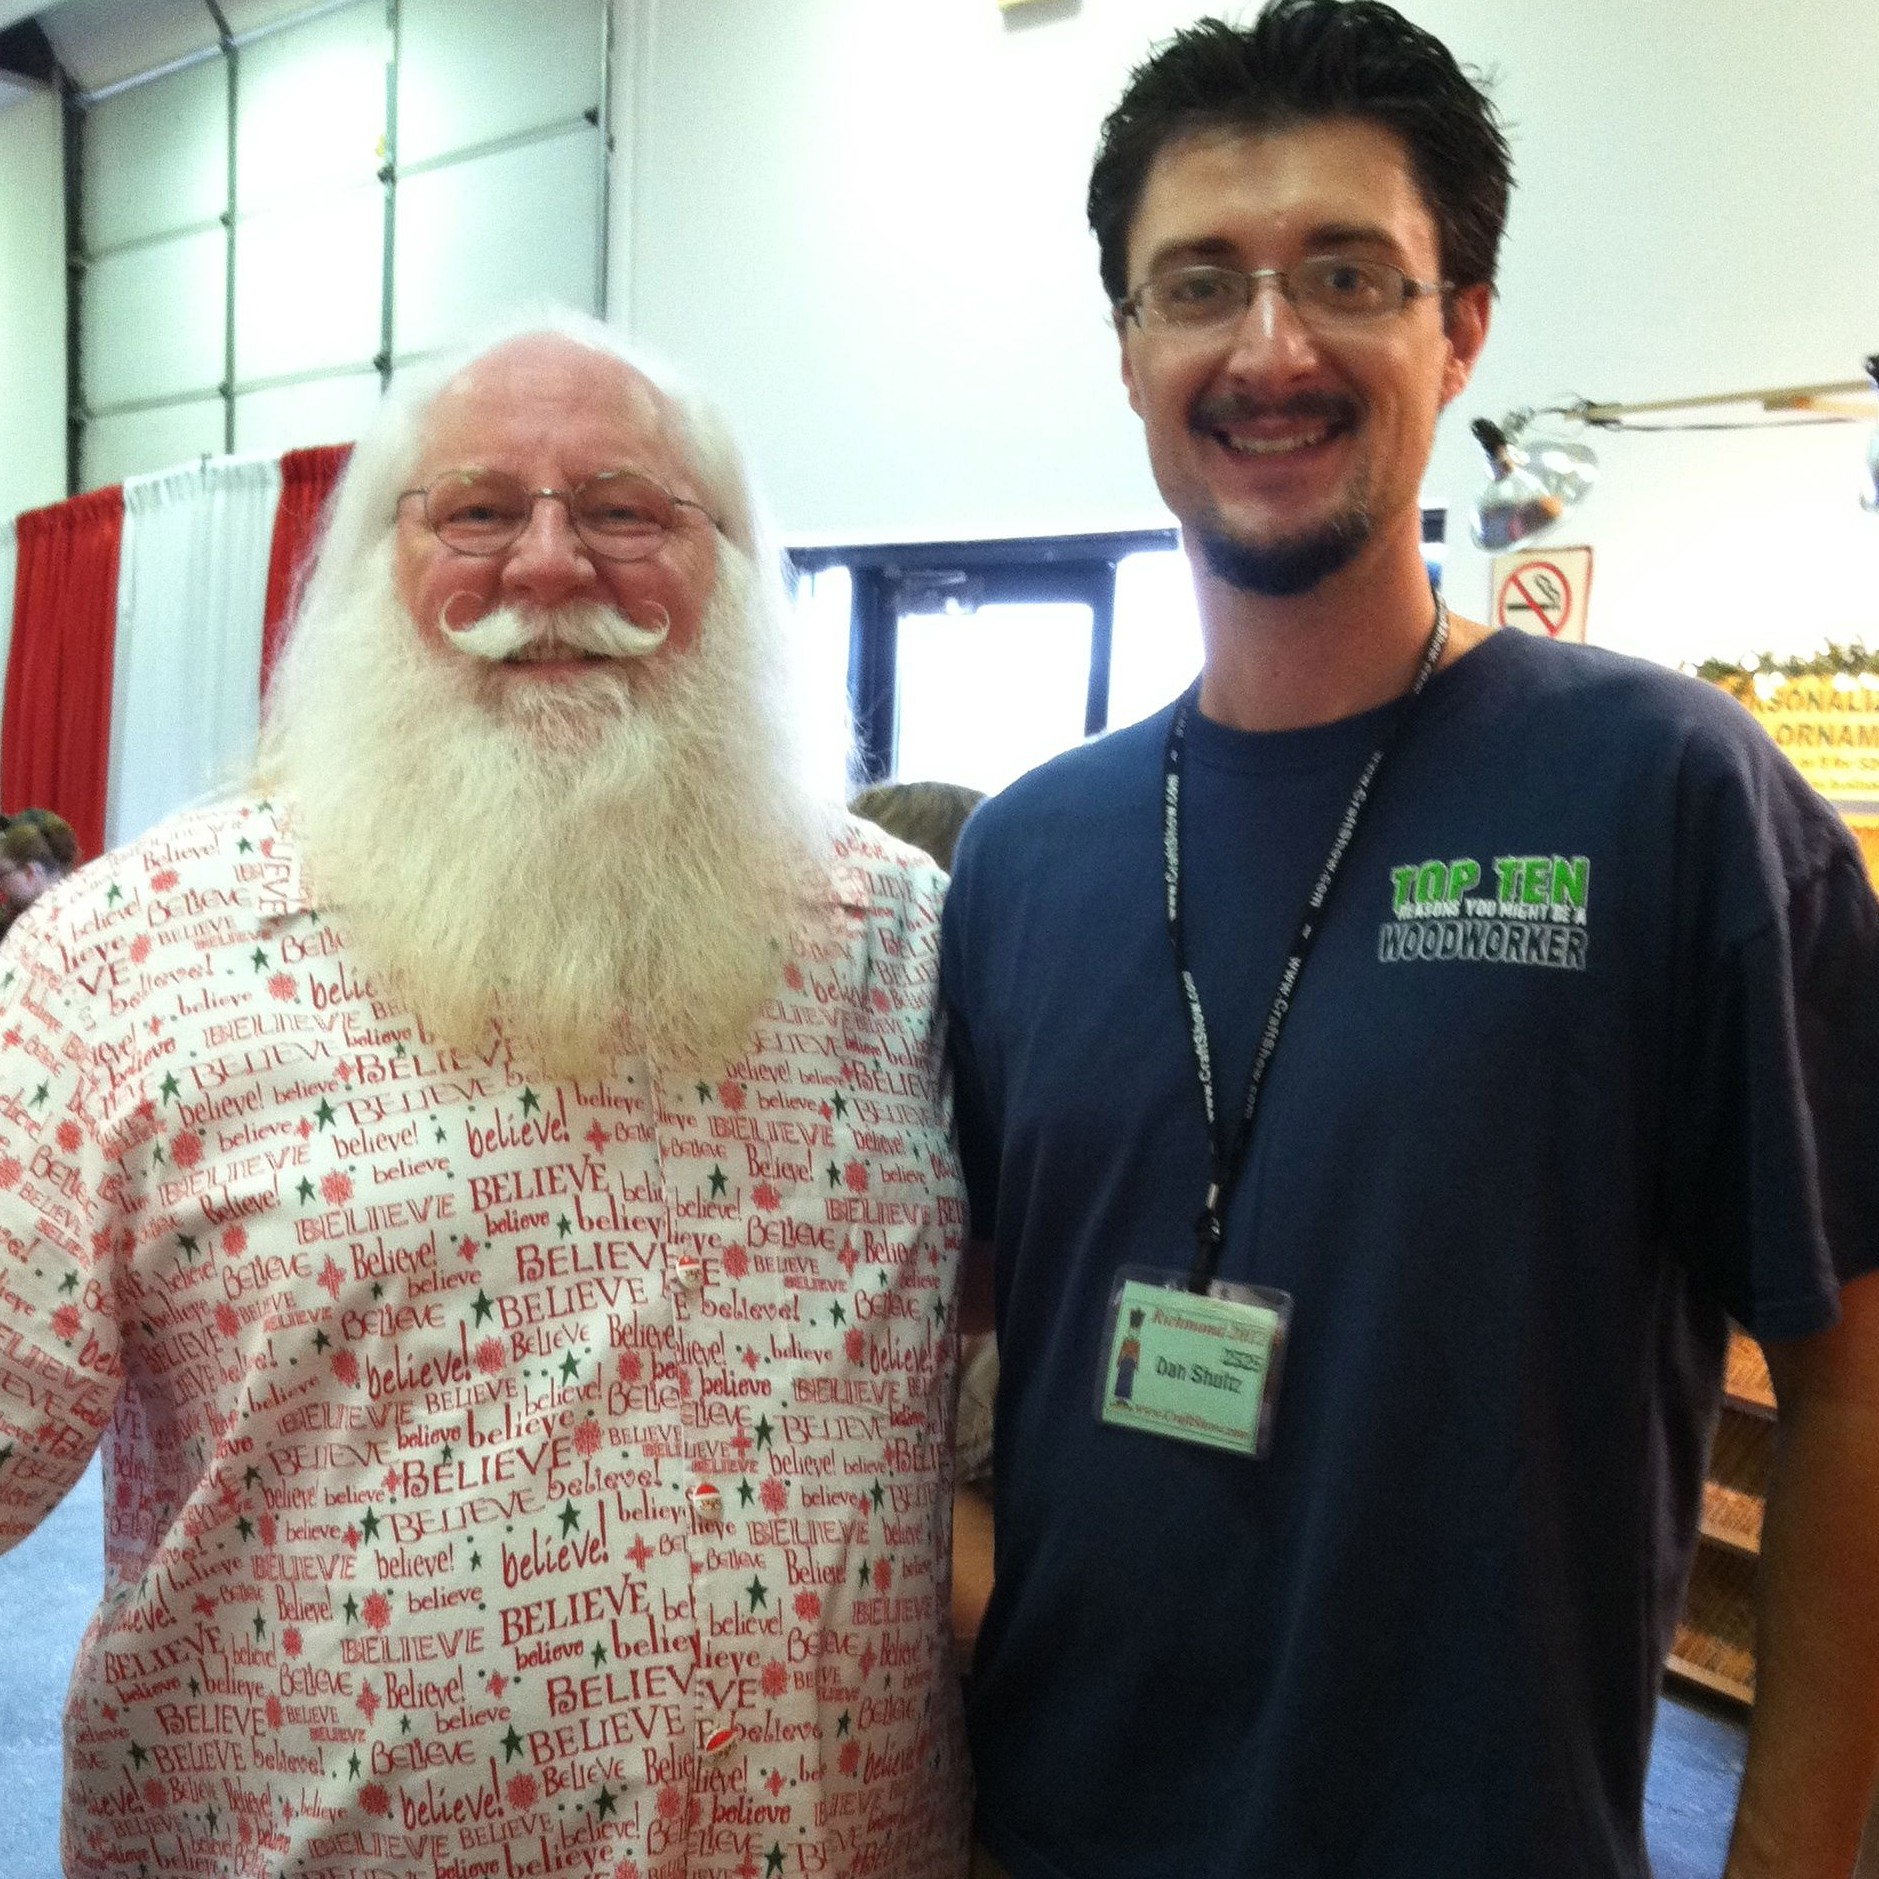 Santa often makes appearances. Here he is with Dan.